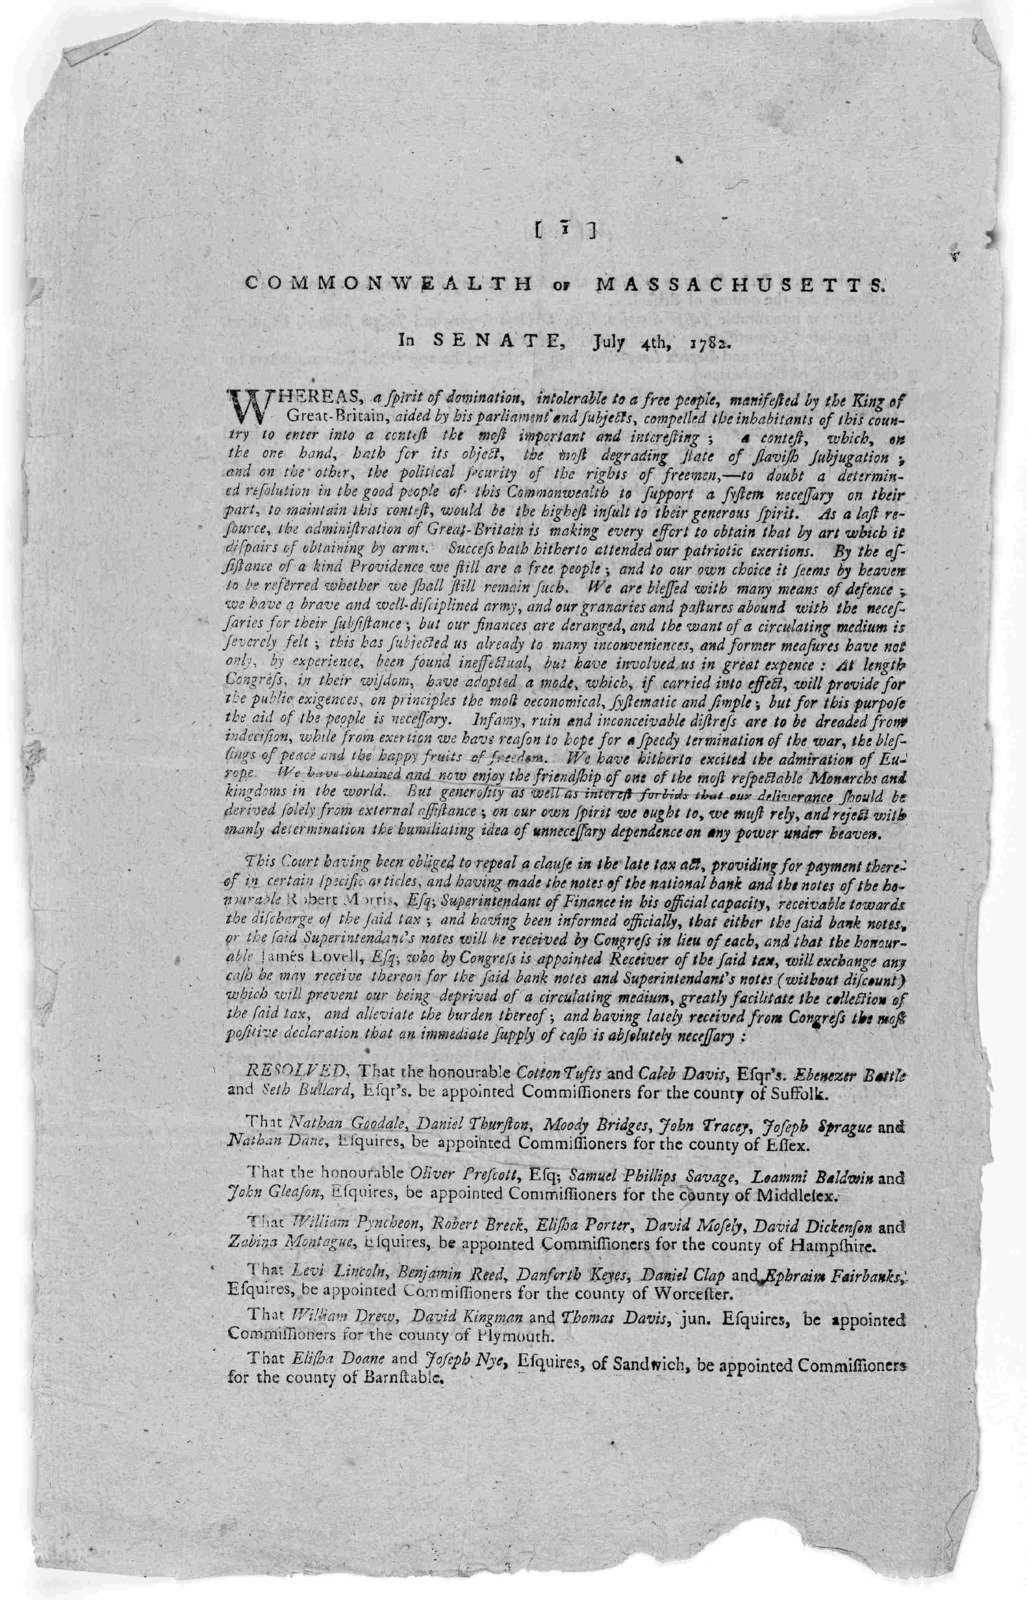 Commonwealth of Massachusetts. In Senate. July 4, 1782. Whereas, a spirit of domination, intolerable to a free people, manifested by the King of Great-Britain, aided by his parliament and subjects ... [Boston: Printed by Edward Eveleth Powars, 1